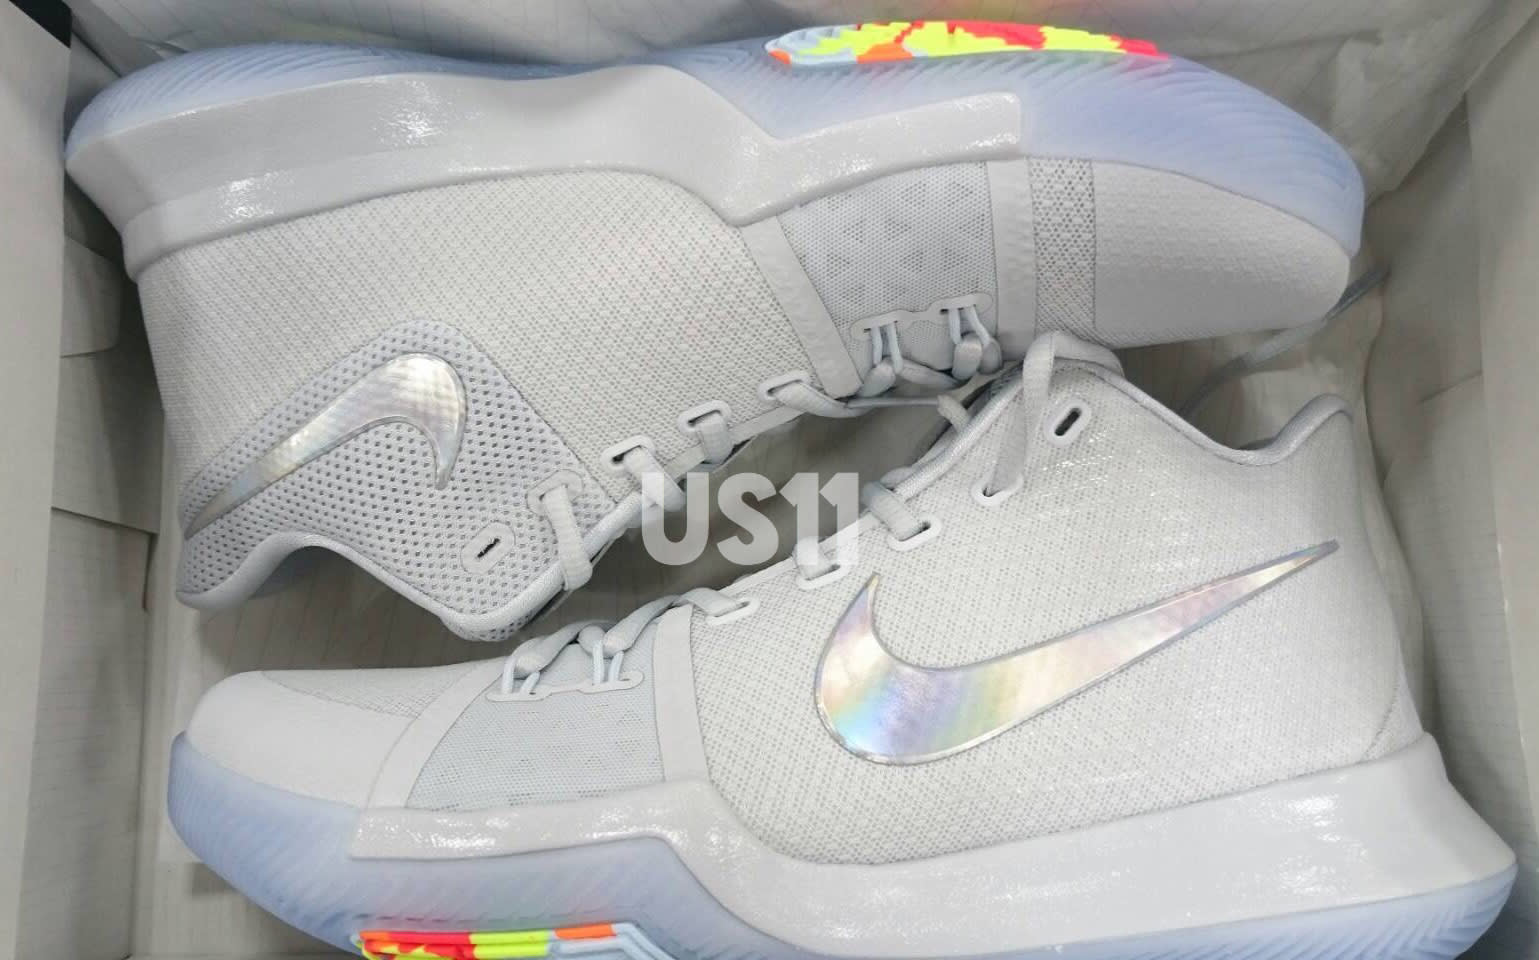 cheaper 226f7 eab53 Nike Kyrie 3 TS ASG White Multicolor Volt Release Date